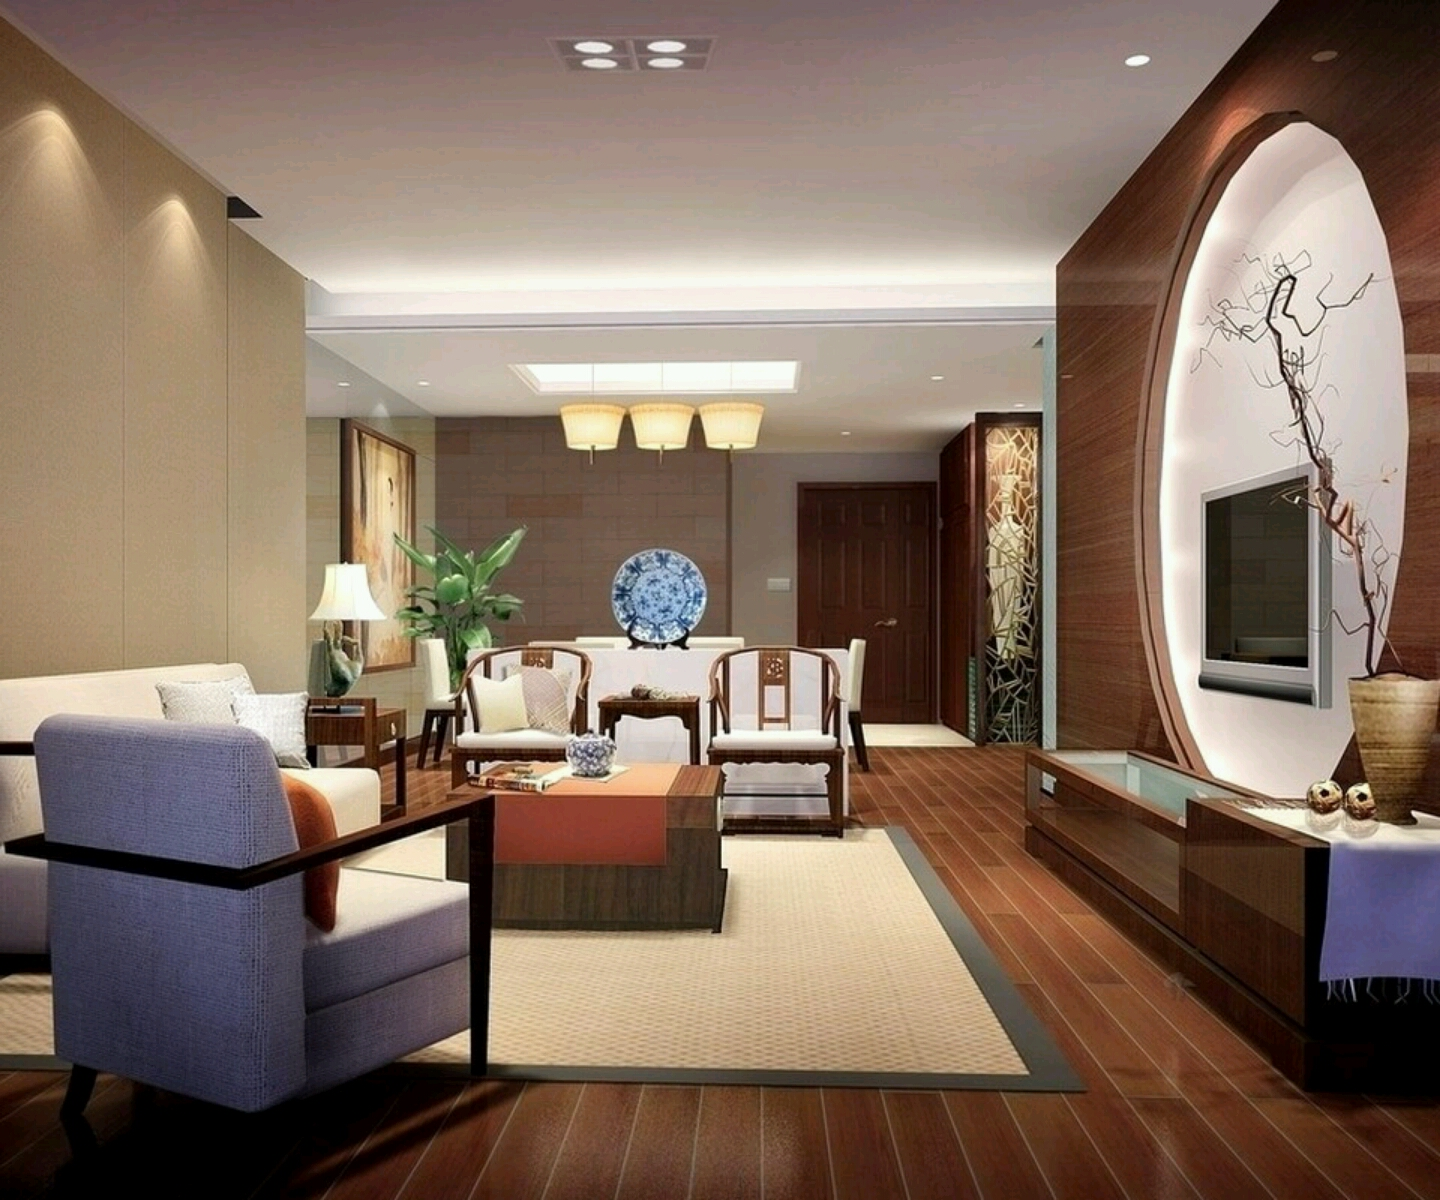 Luxury homes interior decoration living room designs ideas Design ideas living room